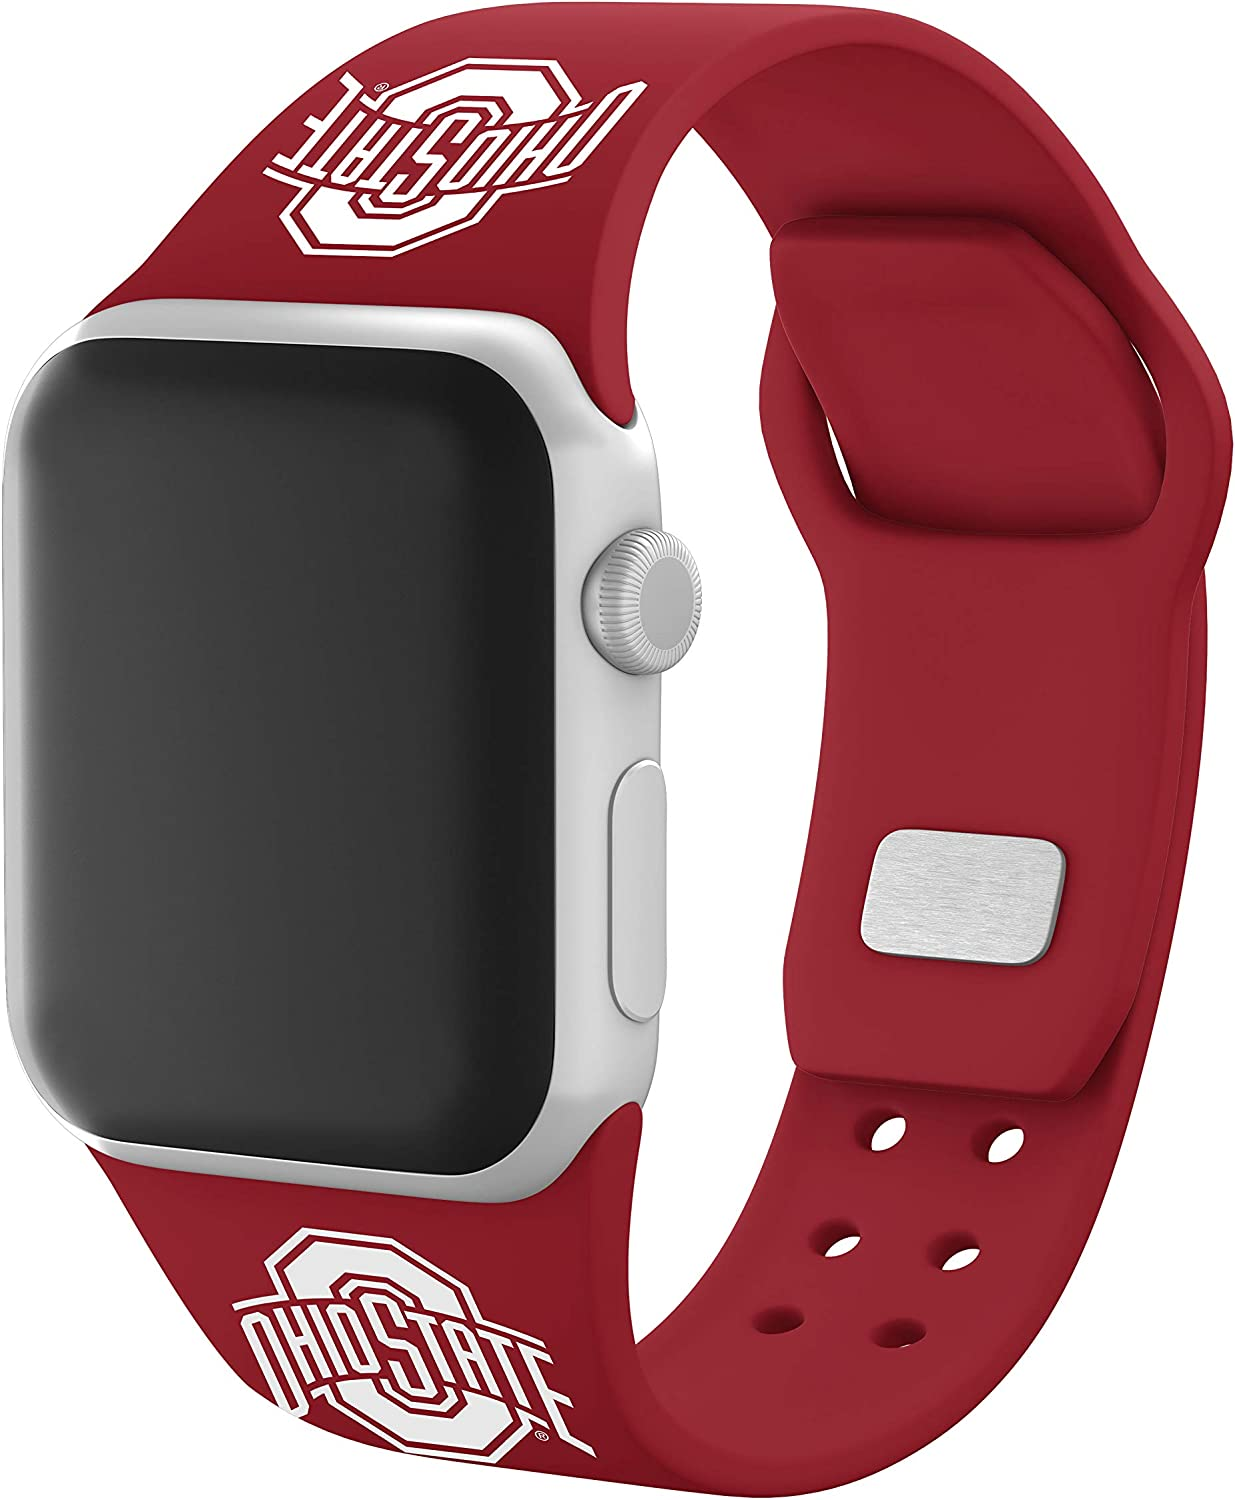 AFFINITY BANDS Ohio State Buckeyes Silicone Sport Watch Band Compatible with Apple Watch (38mm/40mm - Crimson Red)